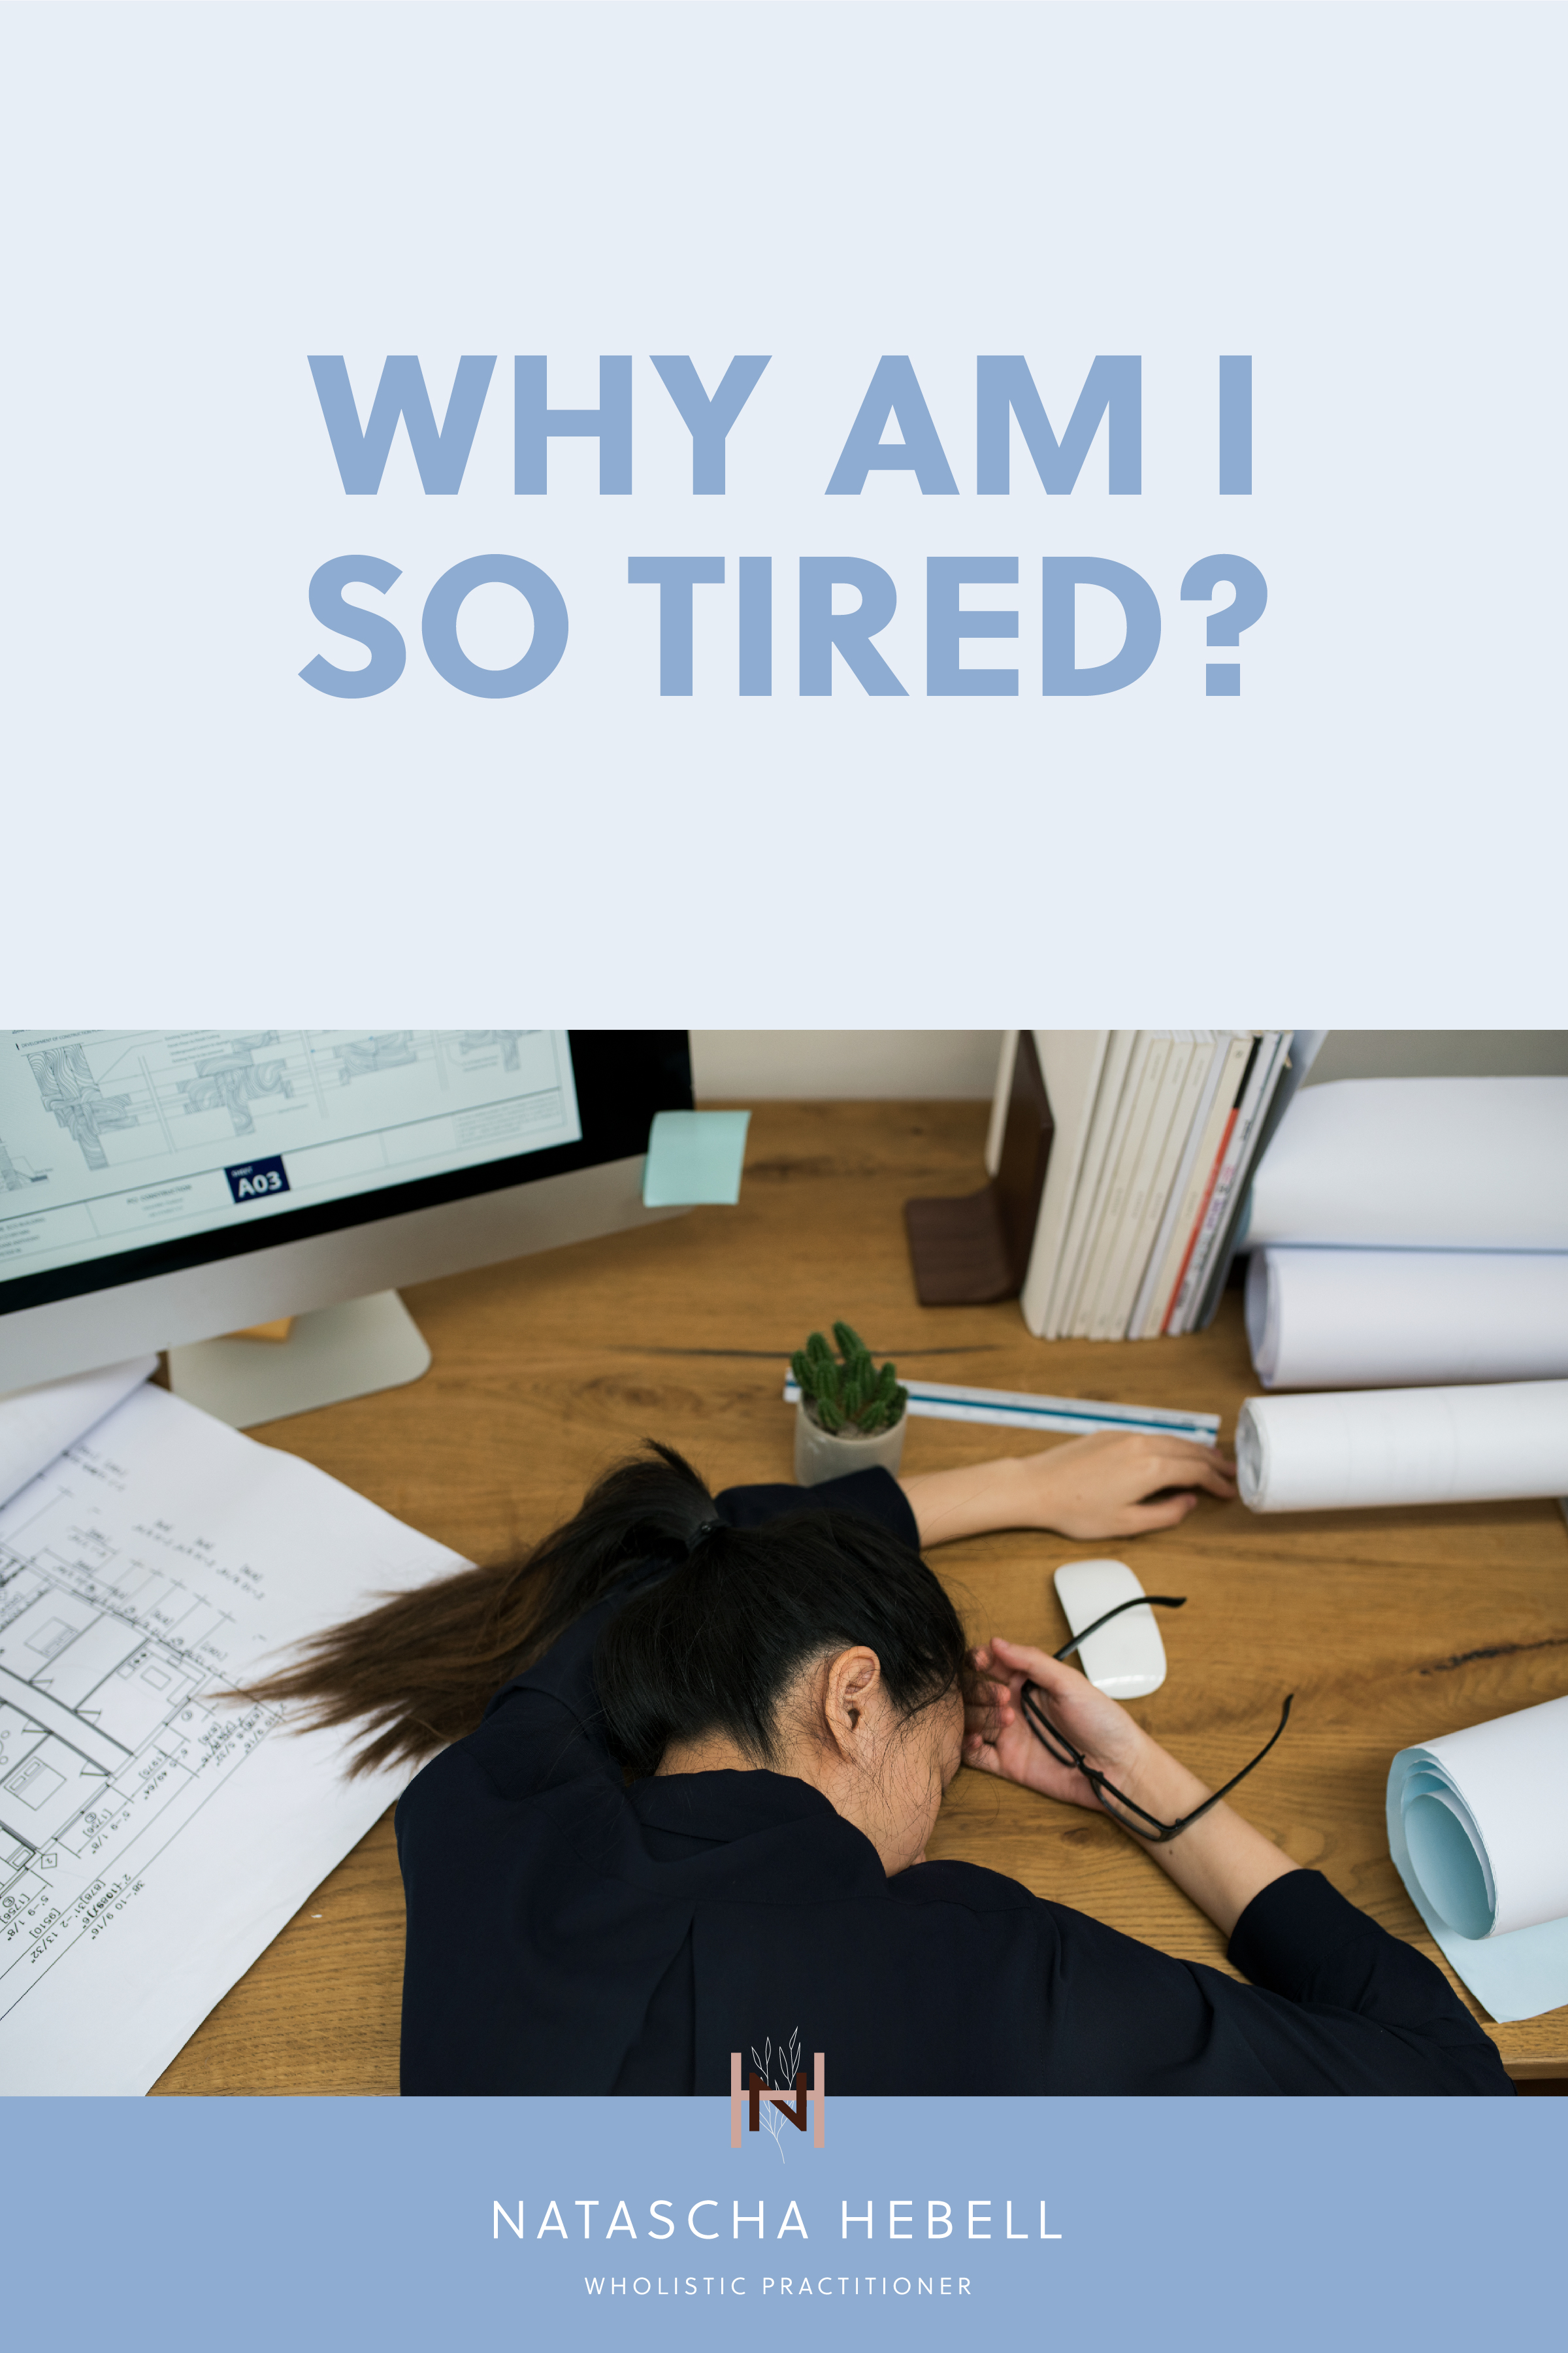 Why am I so tired? | Natascha Hebell, Wholistic Practitioner